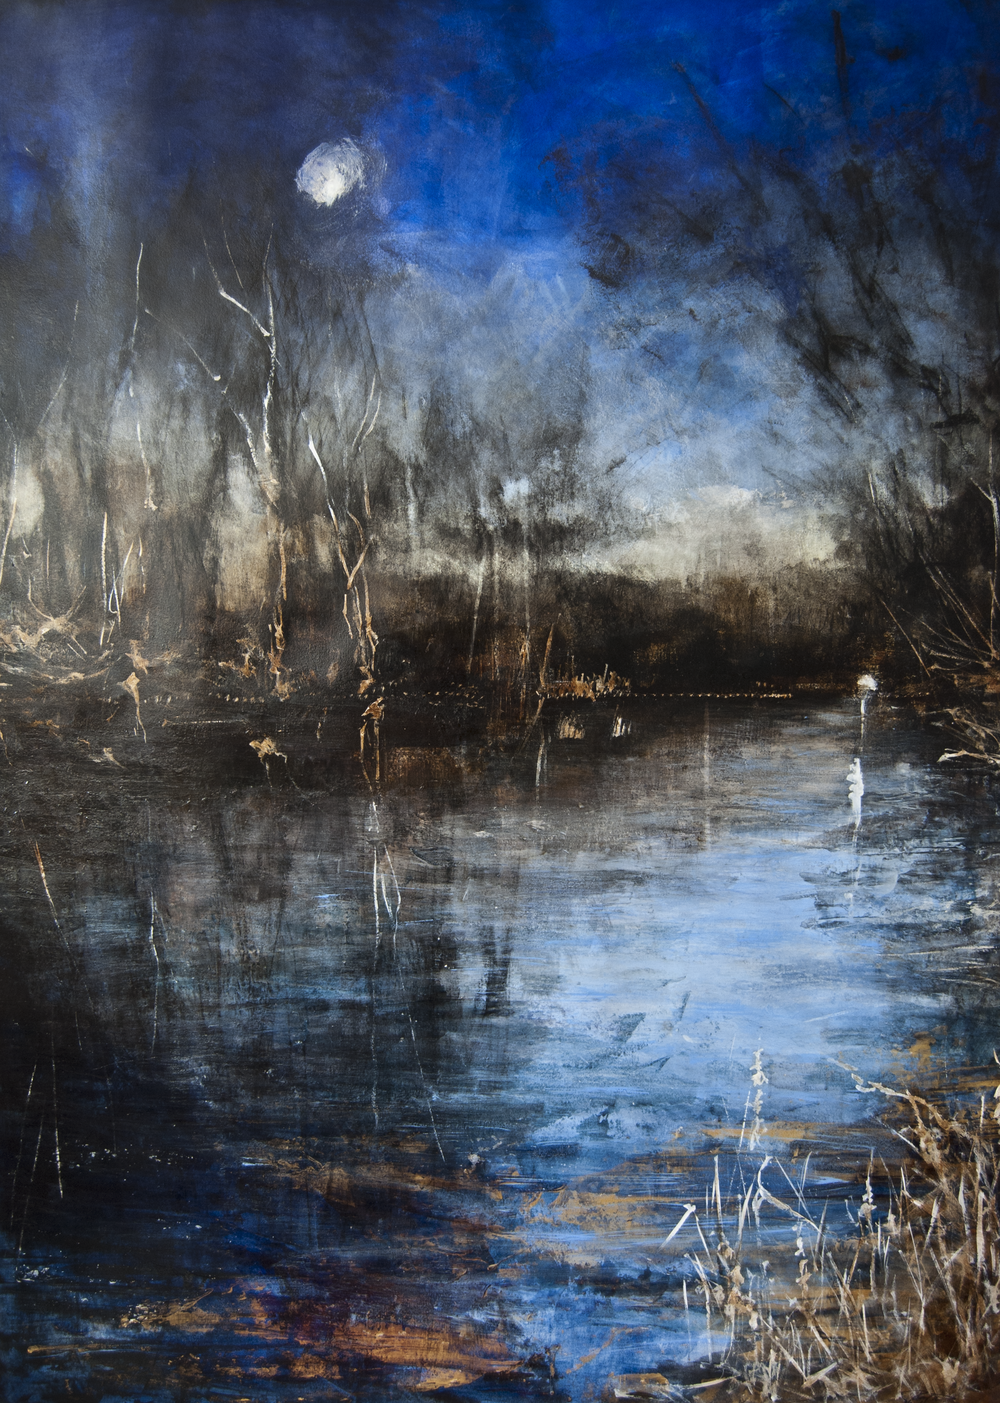 © Rachel Weatherford Whitlow—Moon Rising on the Brandywine, Kennett Square PA 2017